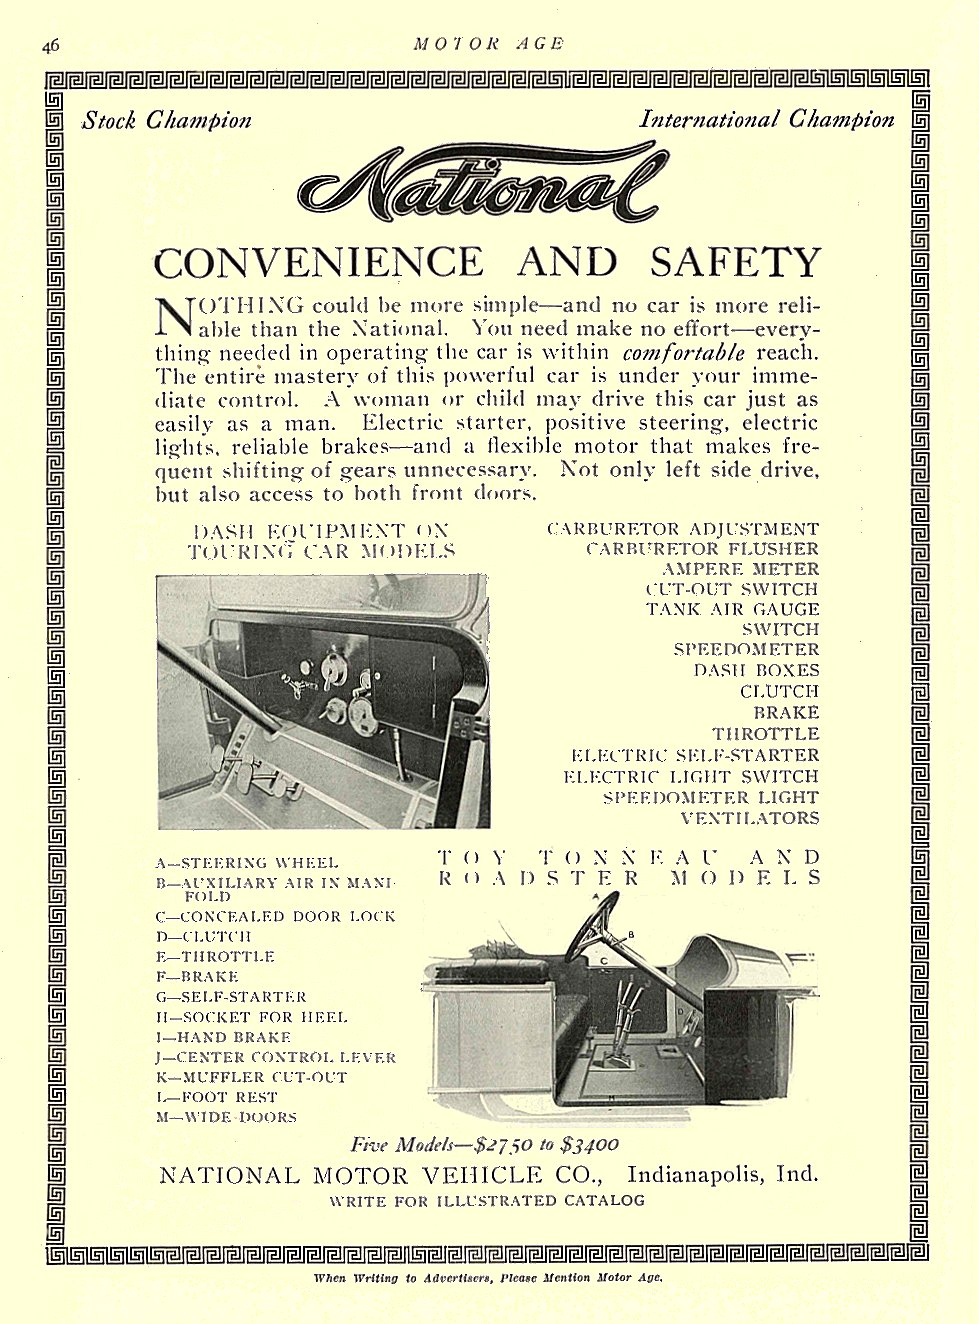 1913 4 17 NATIONAL CONVENIENCE AND SAFETY National Motor Vehicle Co. Indianapolis, IND MOTOR AGE April 17, 1913 8.5″x11.5″ University of Minnesota Library page 46